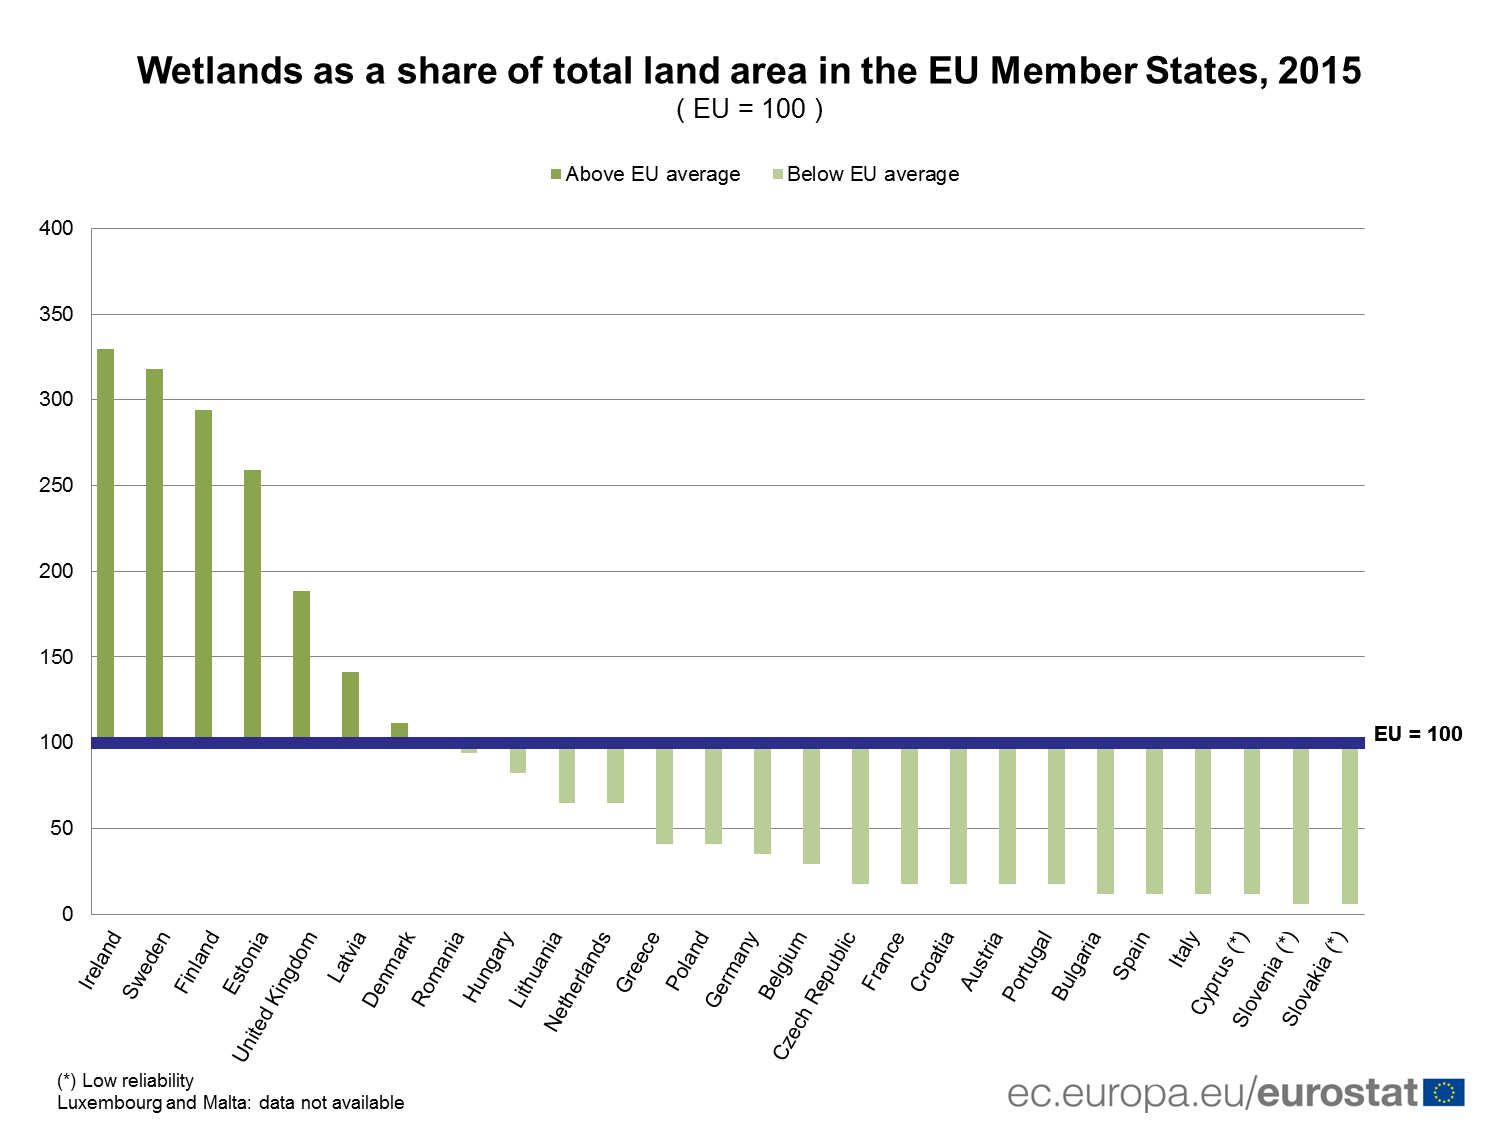 Share of wetlands in the EU